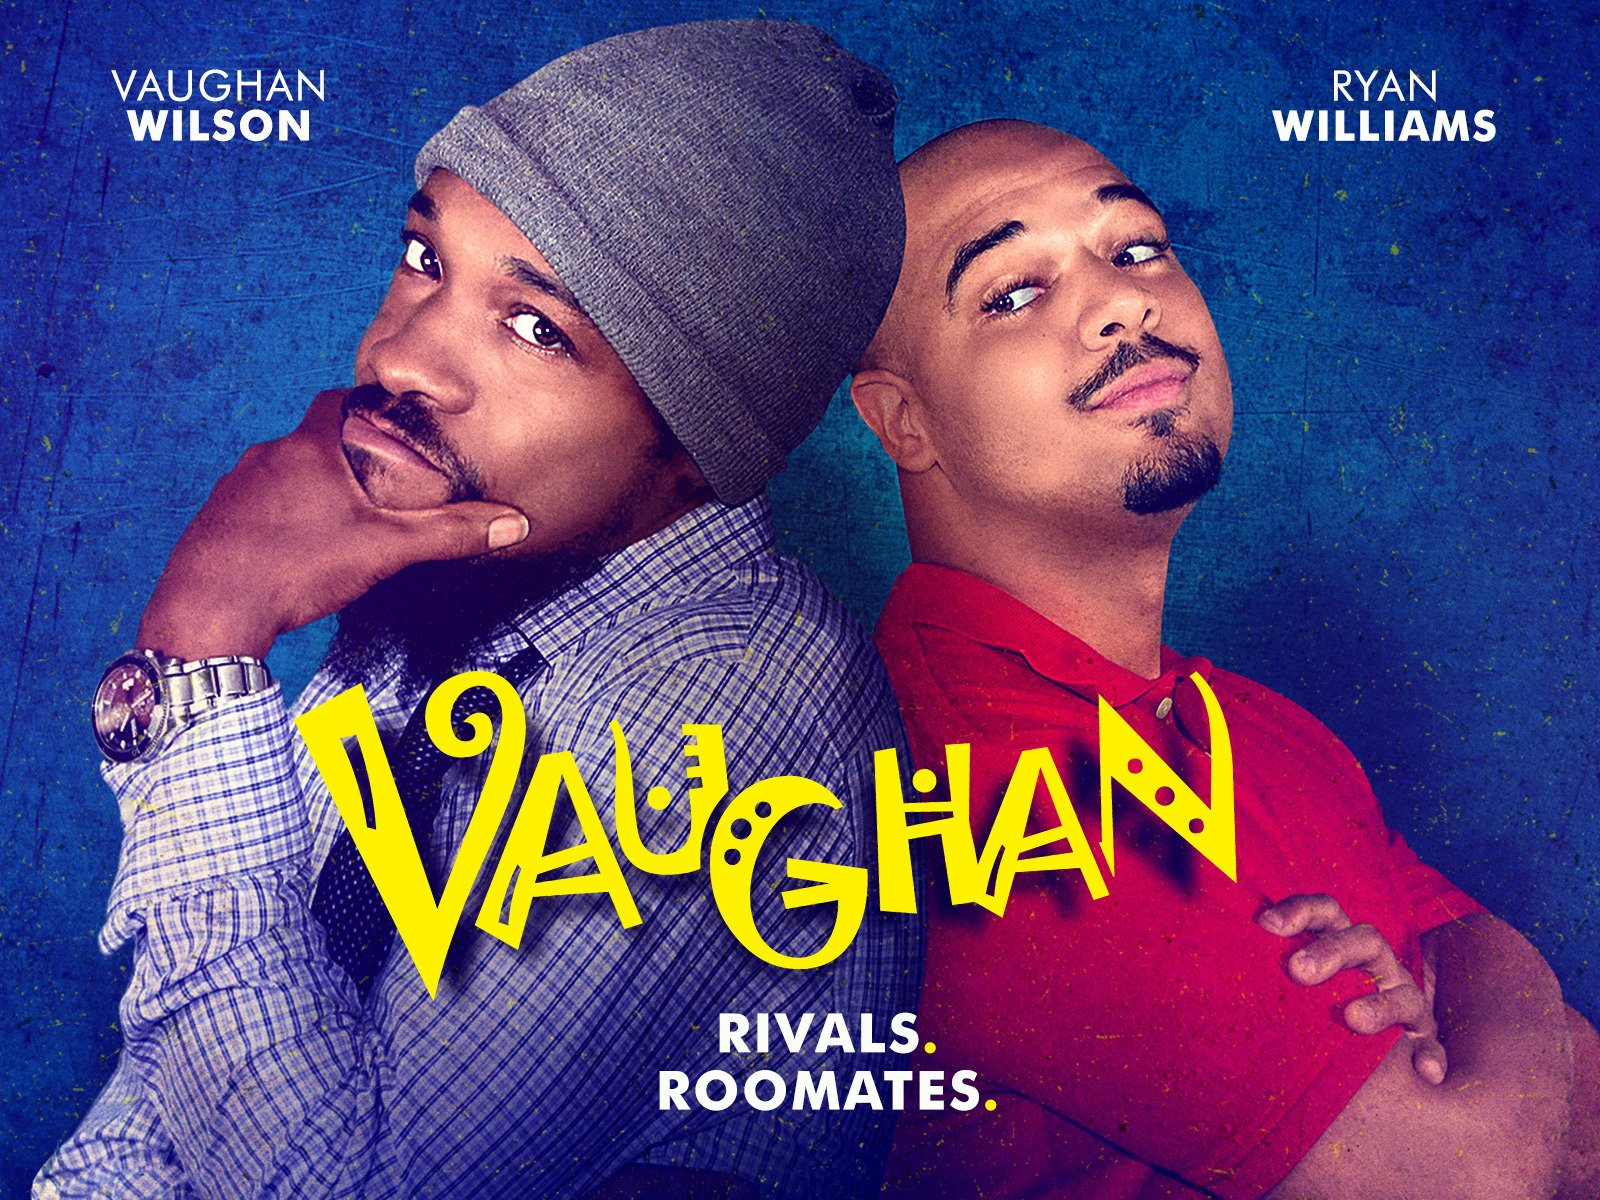 Vaughan - Season 1